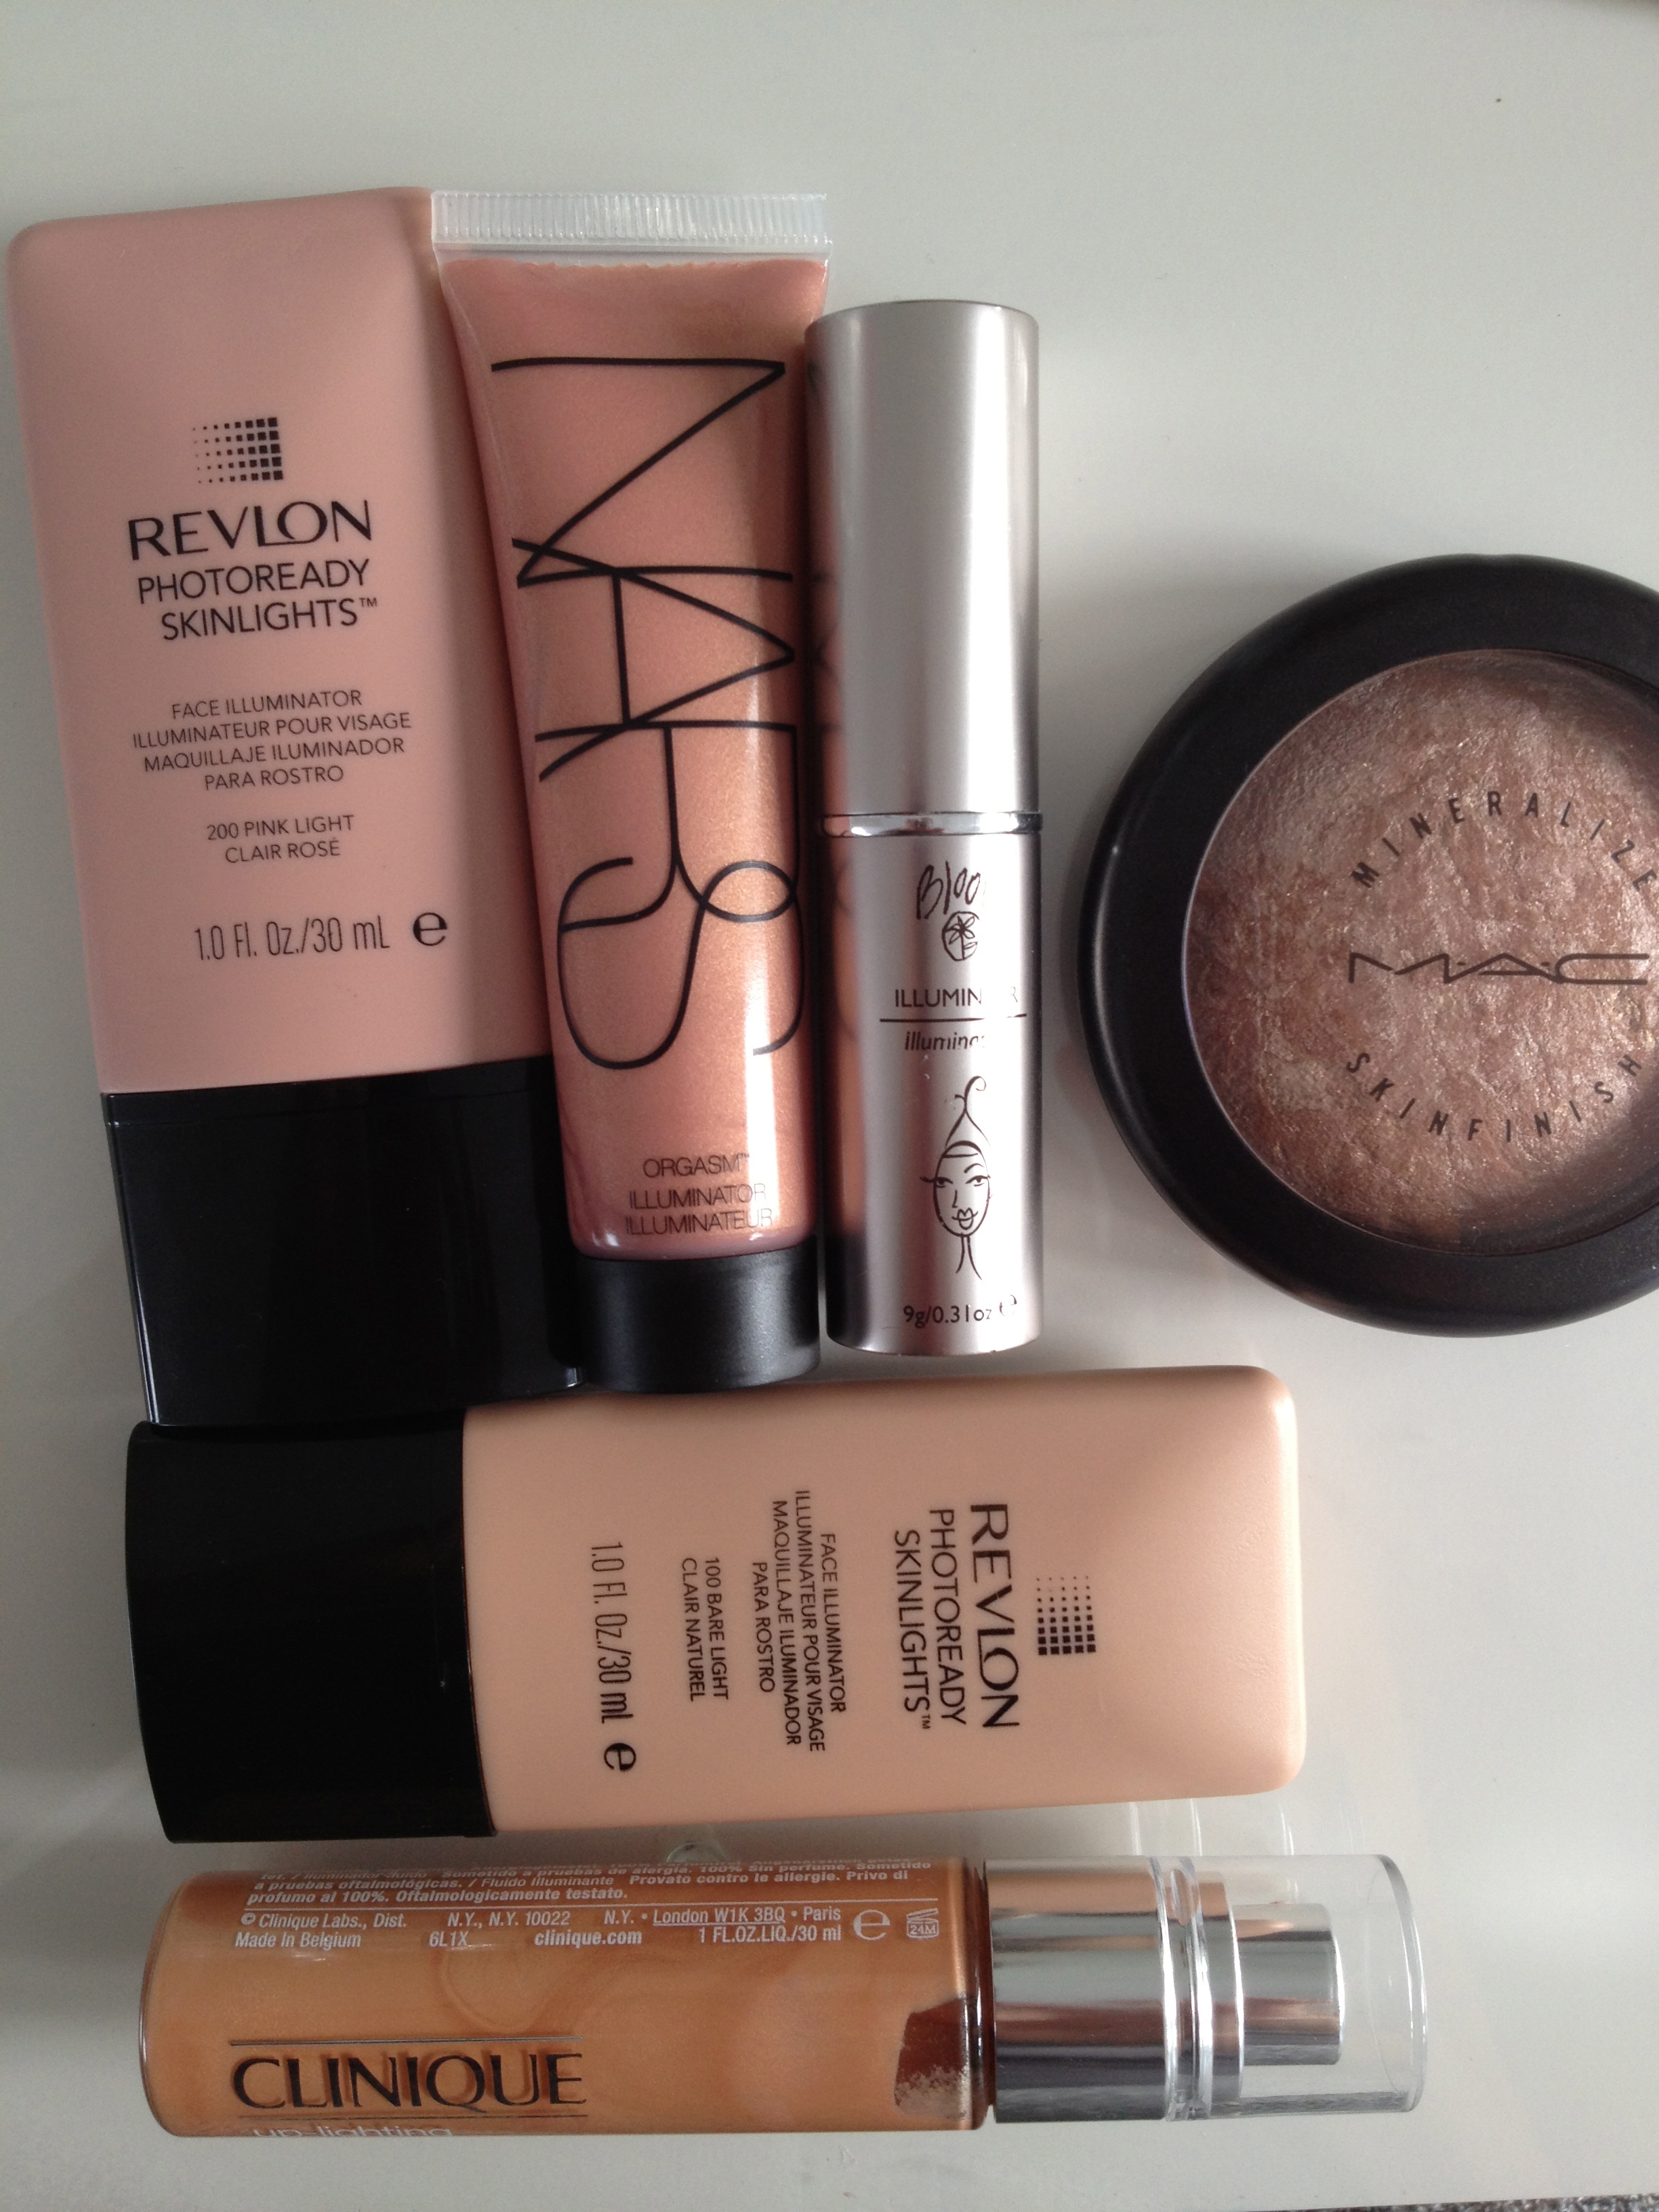 My stash of illuminators and highlighting products